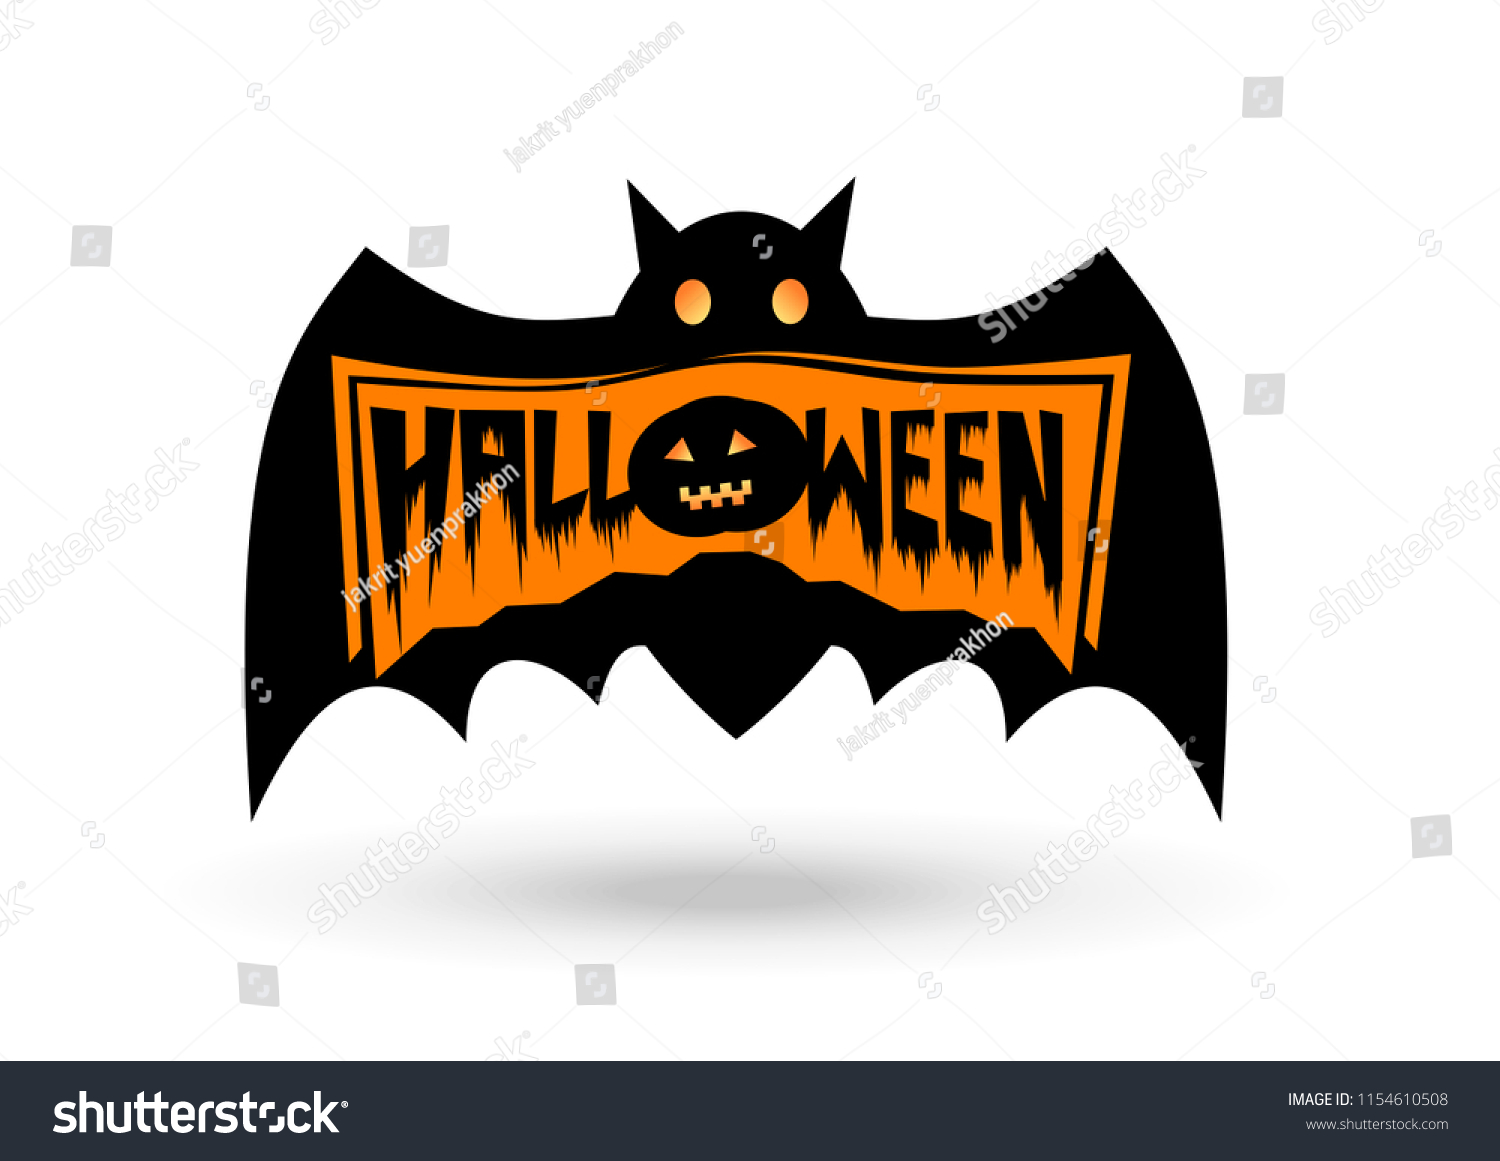 halloween logo design vector stock vector (royalty free) 1154610508